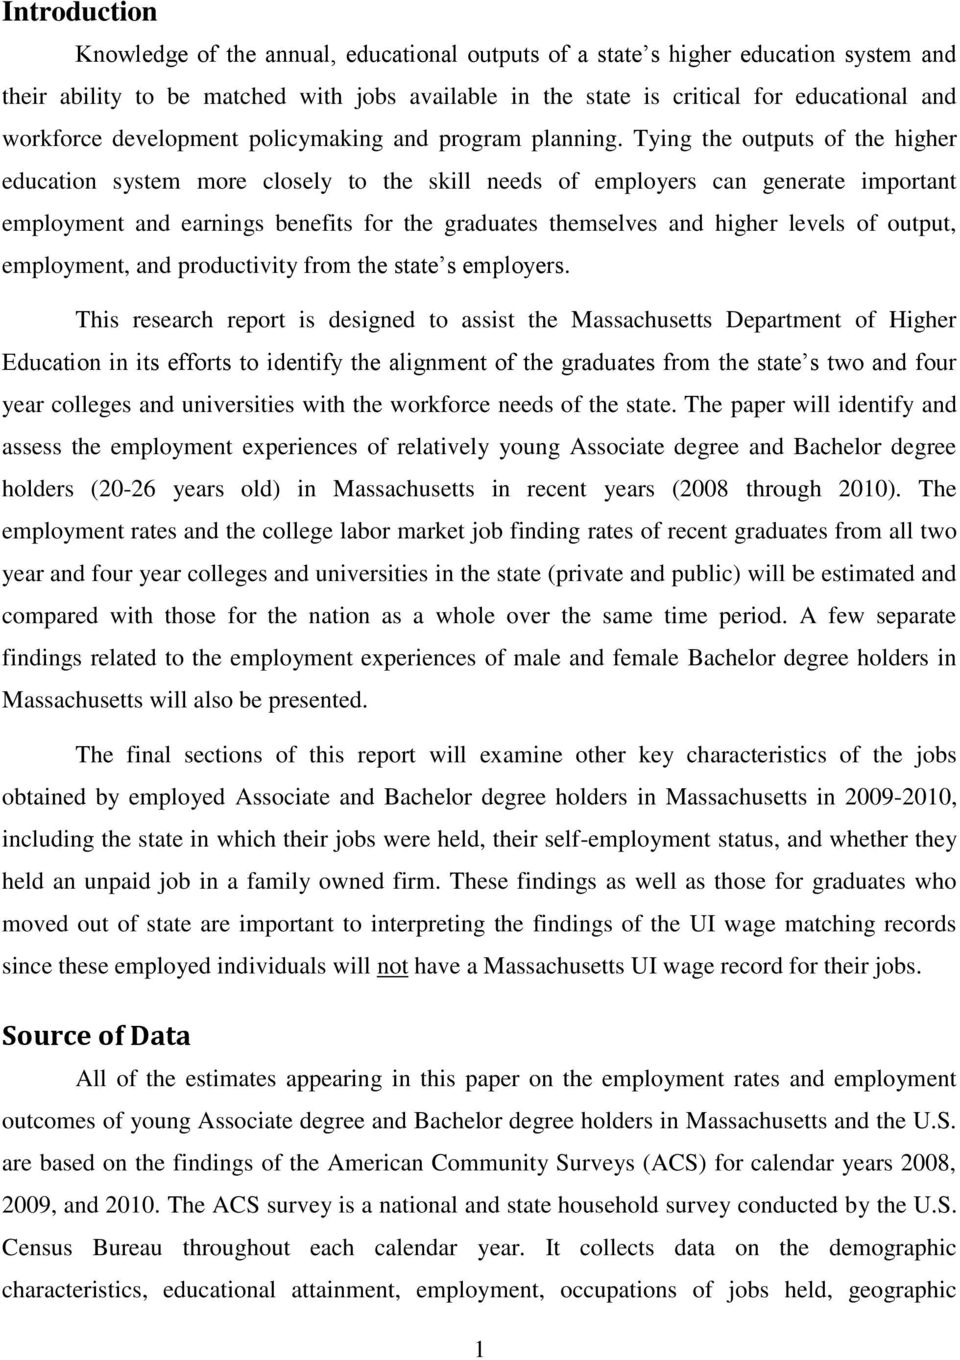 Tying the outputs of the higher education system more closely to the skill needs of employers can generate important employment and earnings benefits for the graduates themselves and higher levels of